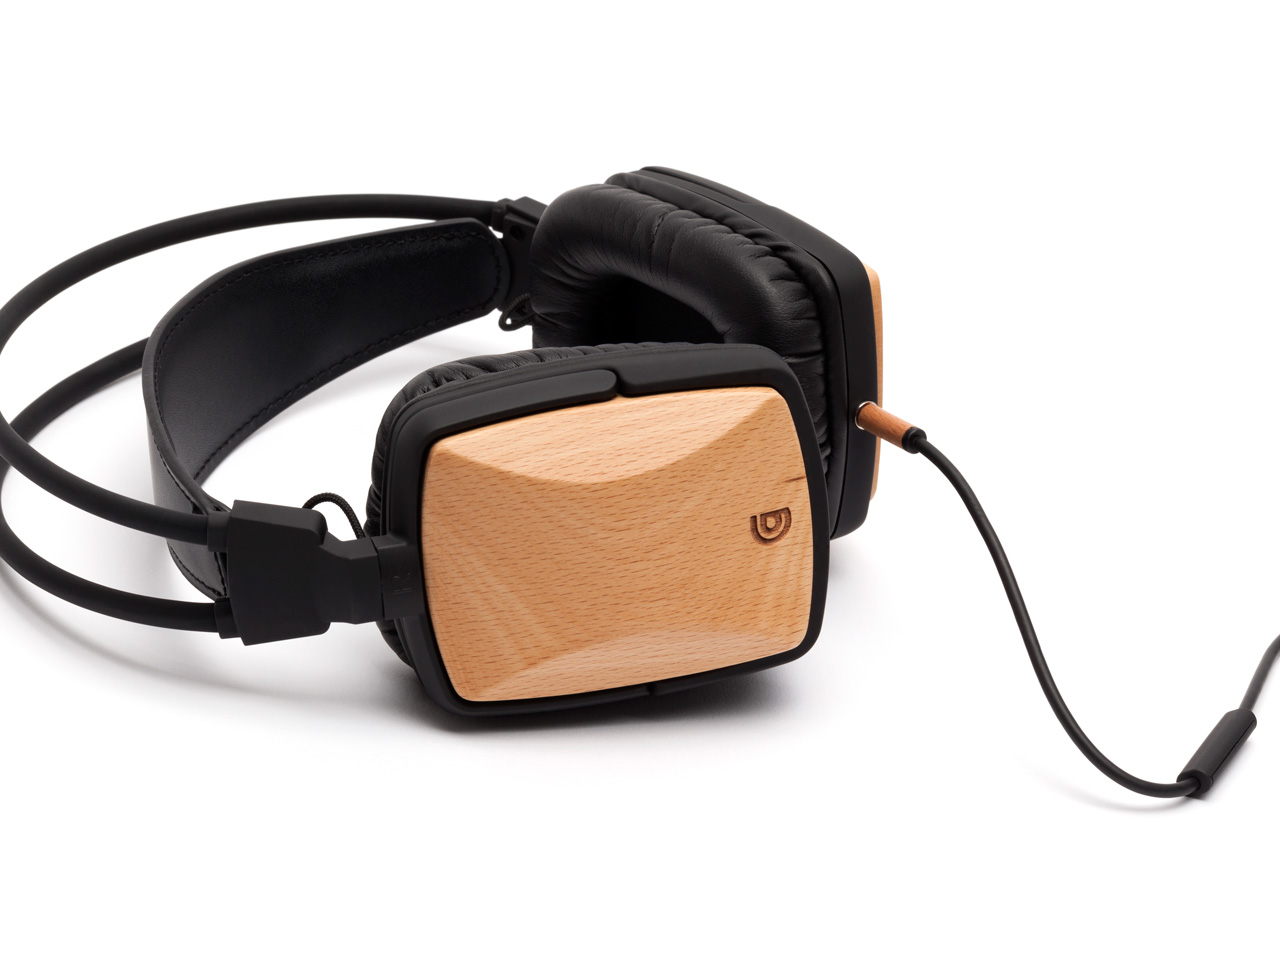 That's why Griffin is proud to offer these exceptionally great-sounding and great-looking headphones, each with unique hand-turned wood, color and markings, polished to a smooth, satin finish.The wooden housings are fashioned from real wood, available in:Walnut- Wood from walnut trees, used in making of fine furniture, gunstocks, and decorative pieces, with distinctive wood grain and rich, dark coloring.Sapele- Also known as aboudikro, wood from African sapele trees, used for making musical instruments, reminiscent of mahogany, with distinctive grain and coloring.Beech- Wood from beech trees, with clear wood grain and light coloring.These headphones pair the excellent acoustic qualities of the wood with 50 mm neodymium drivers. One listen, and you'll agree that it's a good match. Griffin WoodTones headphones impart warm overtones that accentuate the mid-range. Vocals come alive, and low frequency bass emerges without distorting harmonics or clarity-destroying echoes. You'll notice an